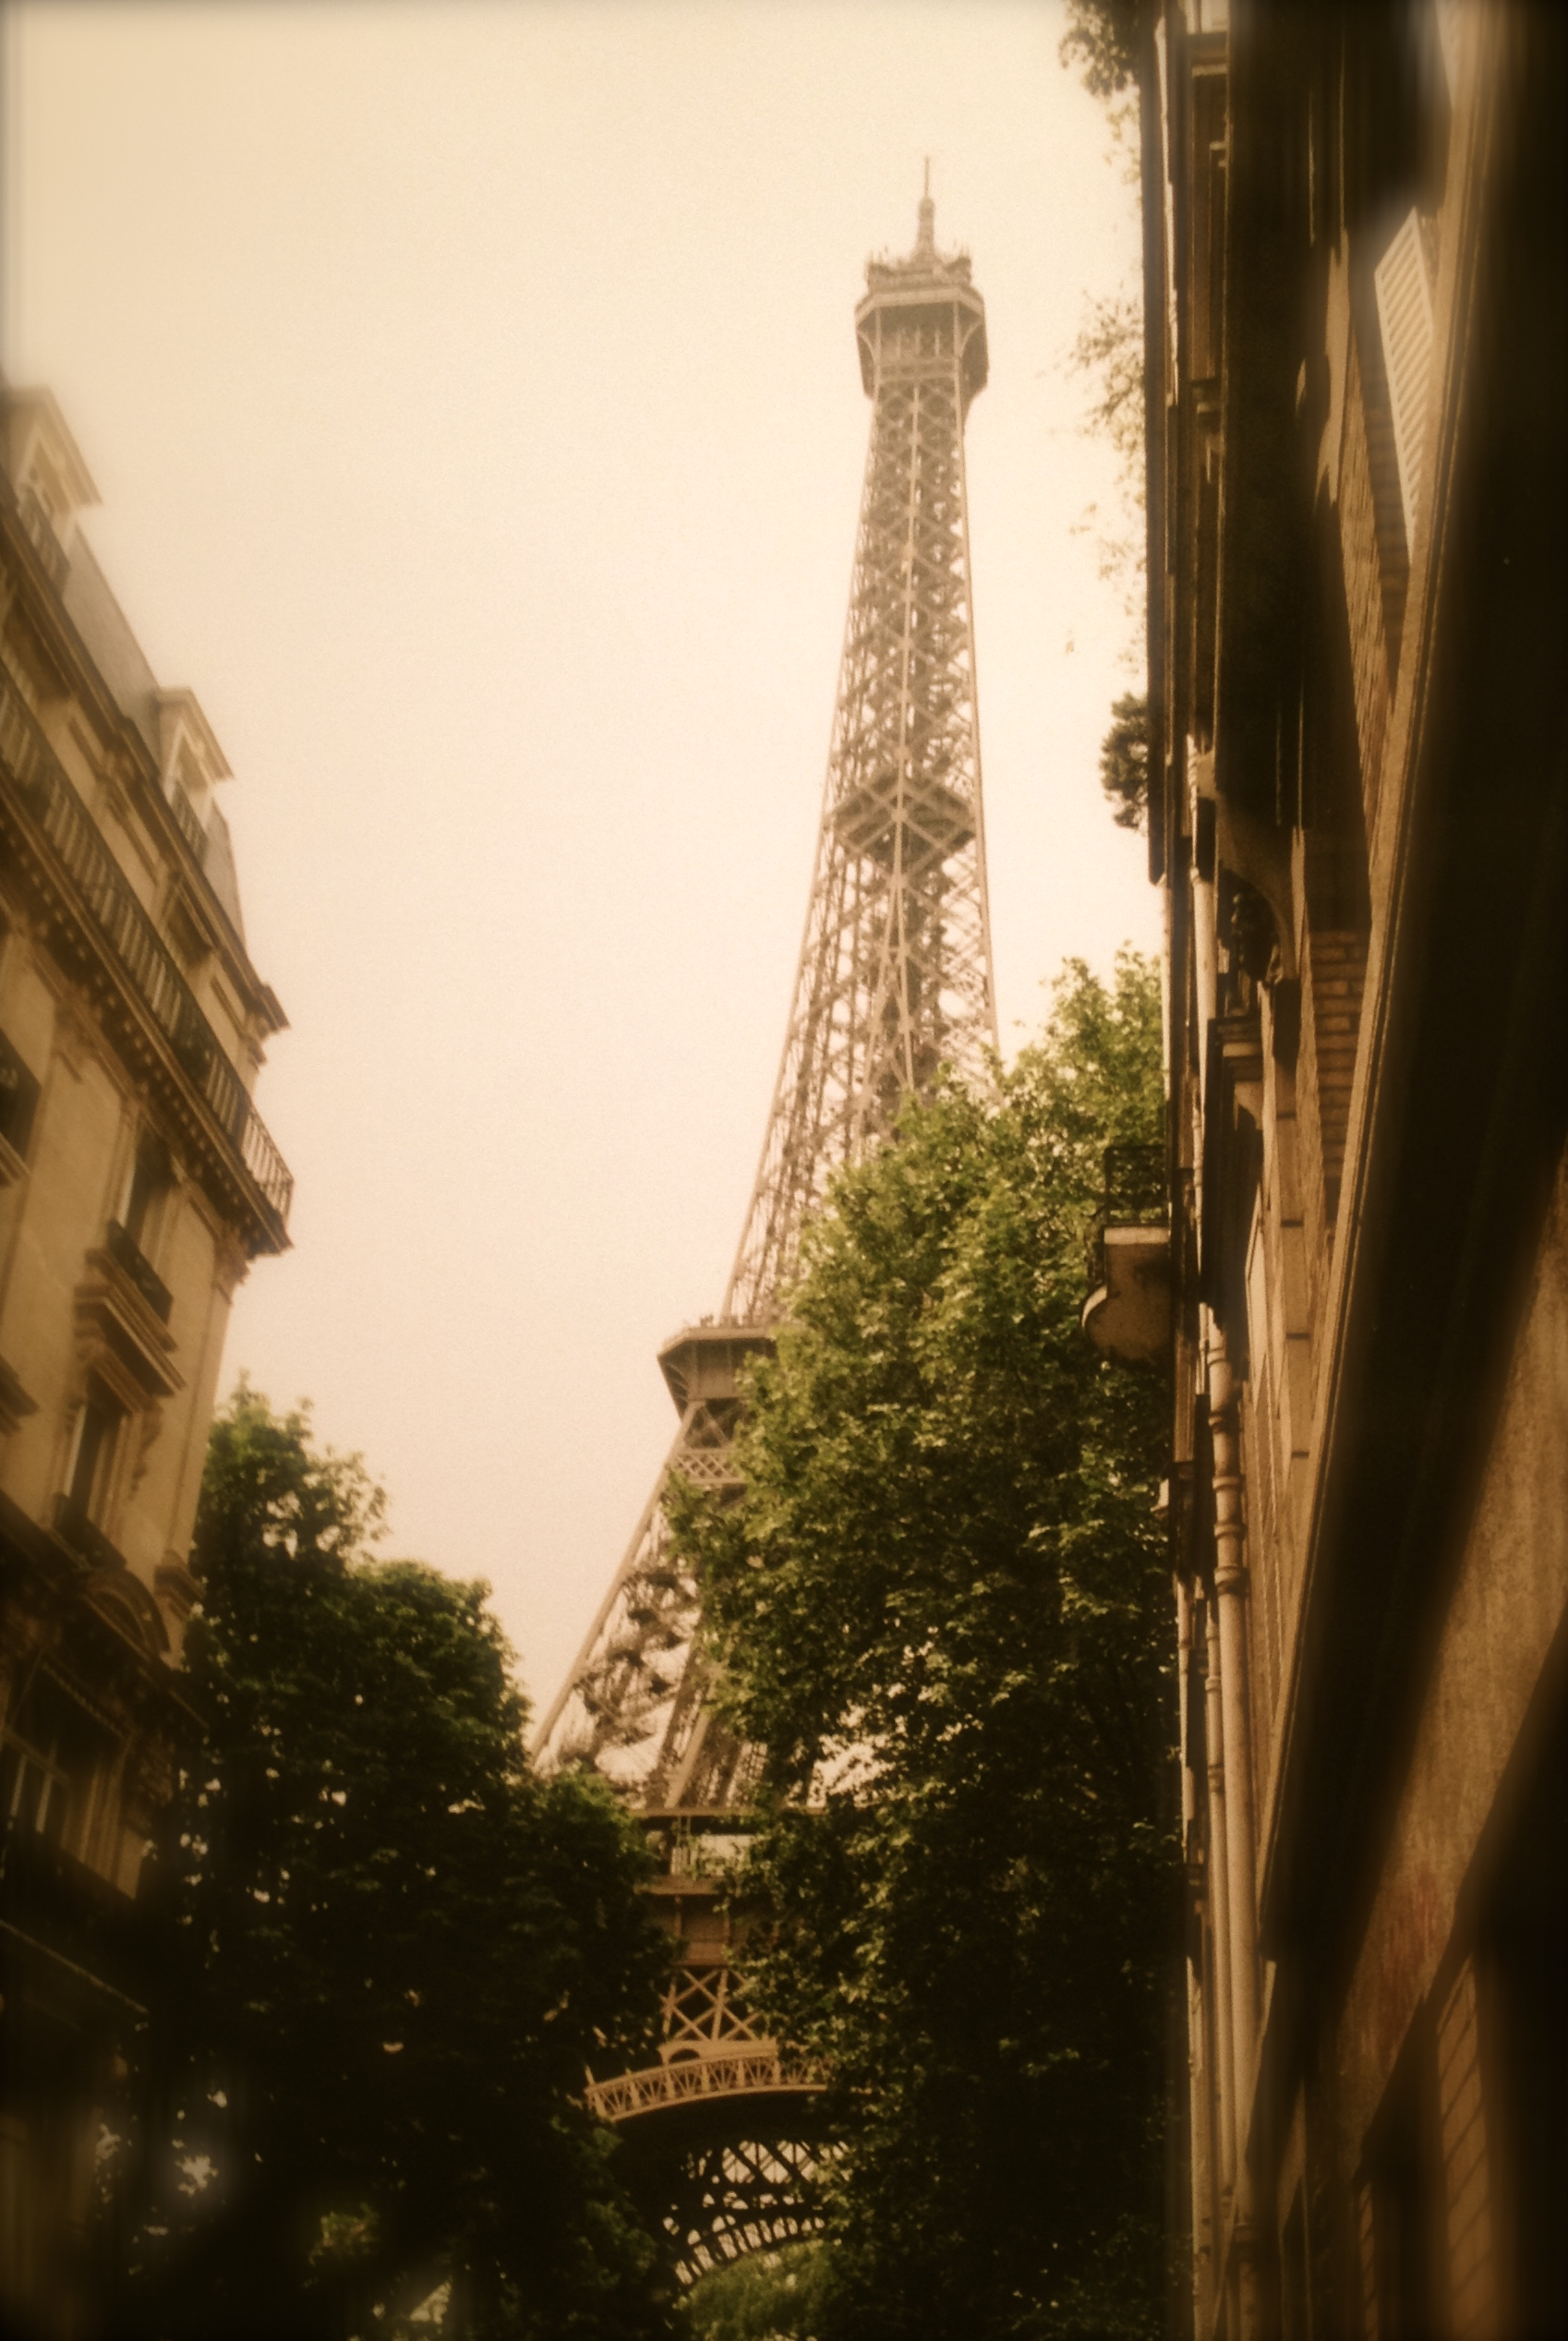 Our view of the eiffel tower right around the corner from where we stayed at the Hotel Amelie.